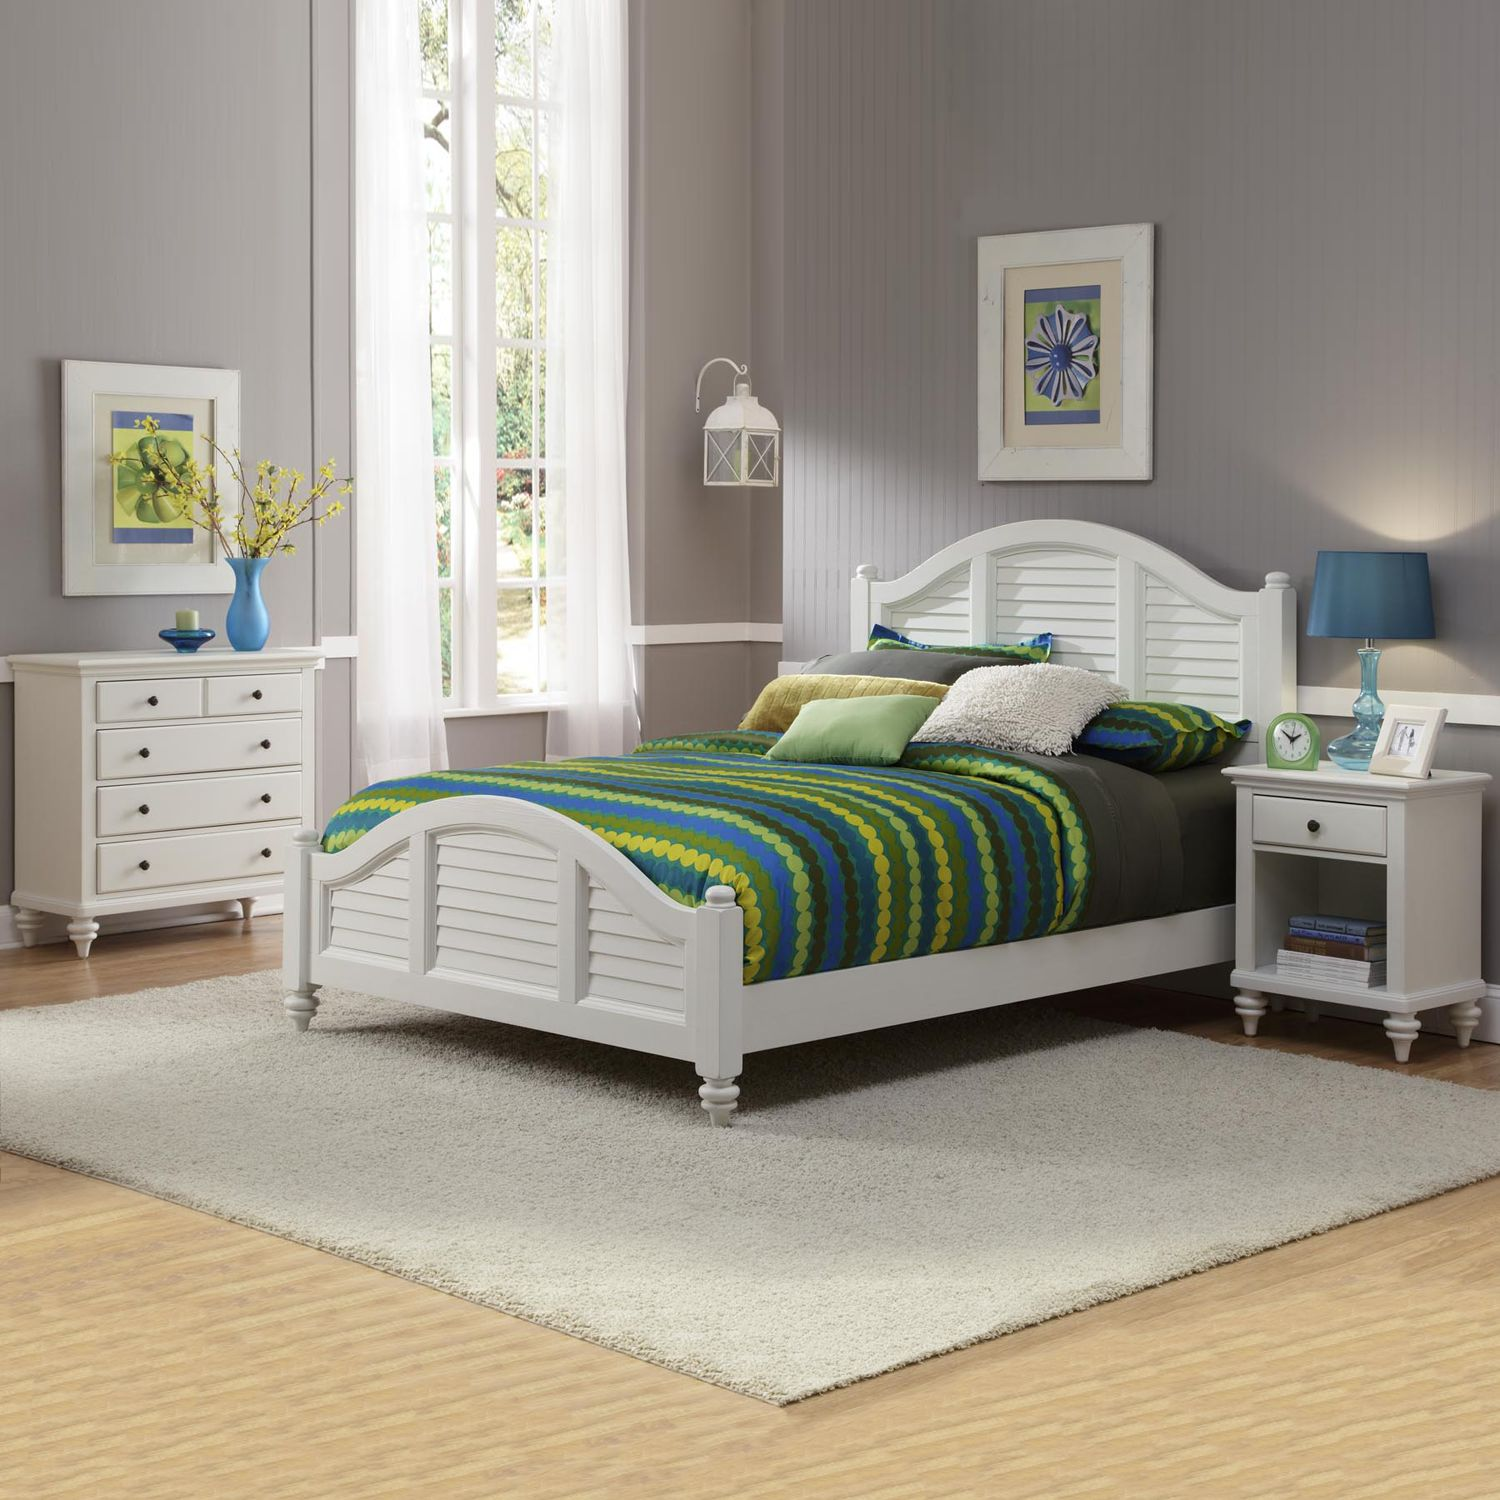 Ideal Home Styles Bermuda White Queen Bed Nightstand and Chest